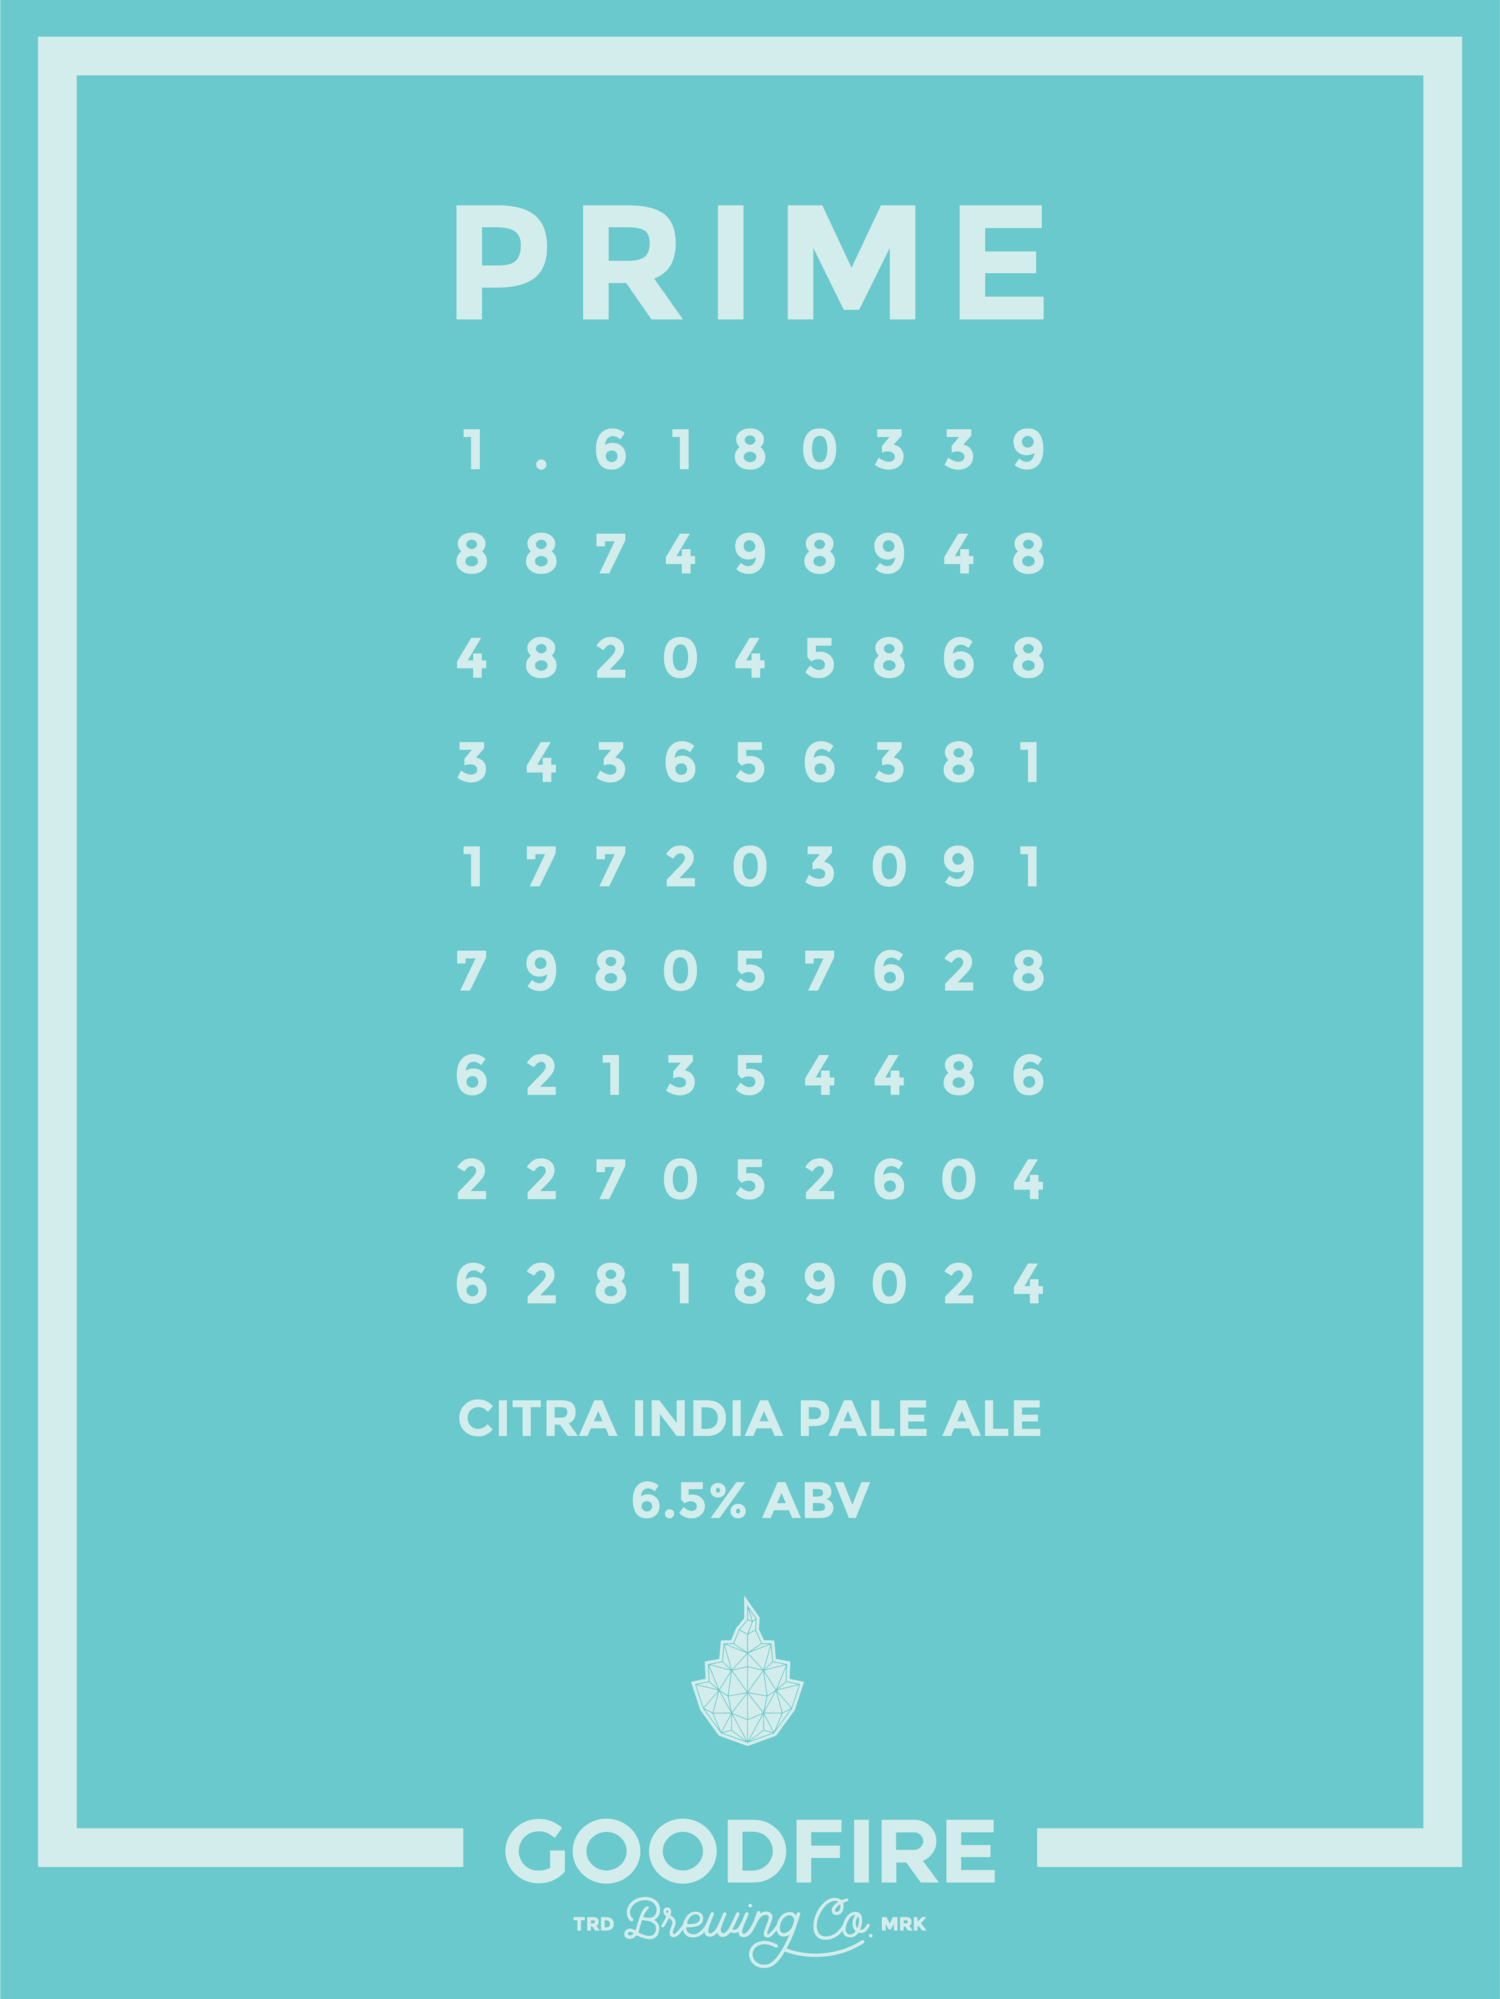 PRIME DESCRIPTION Goodfire Brewing Co